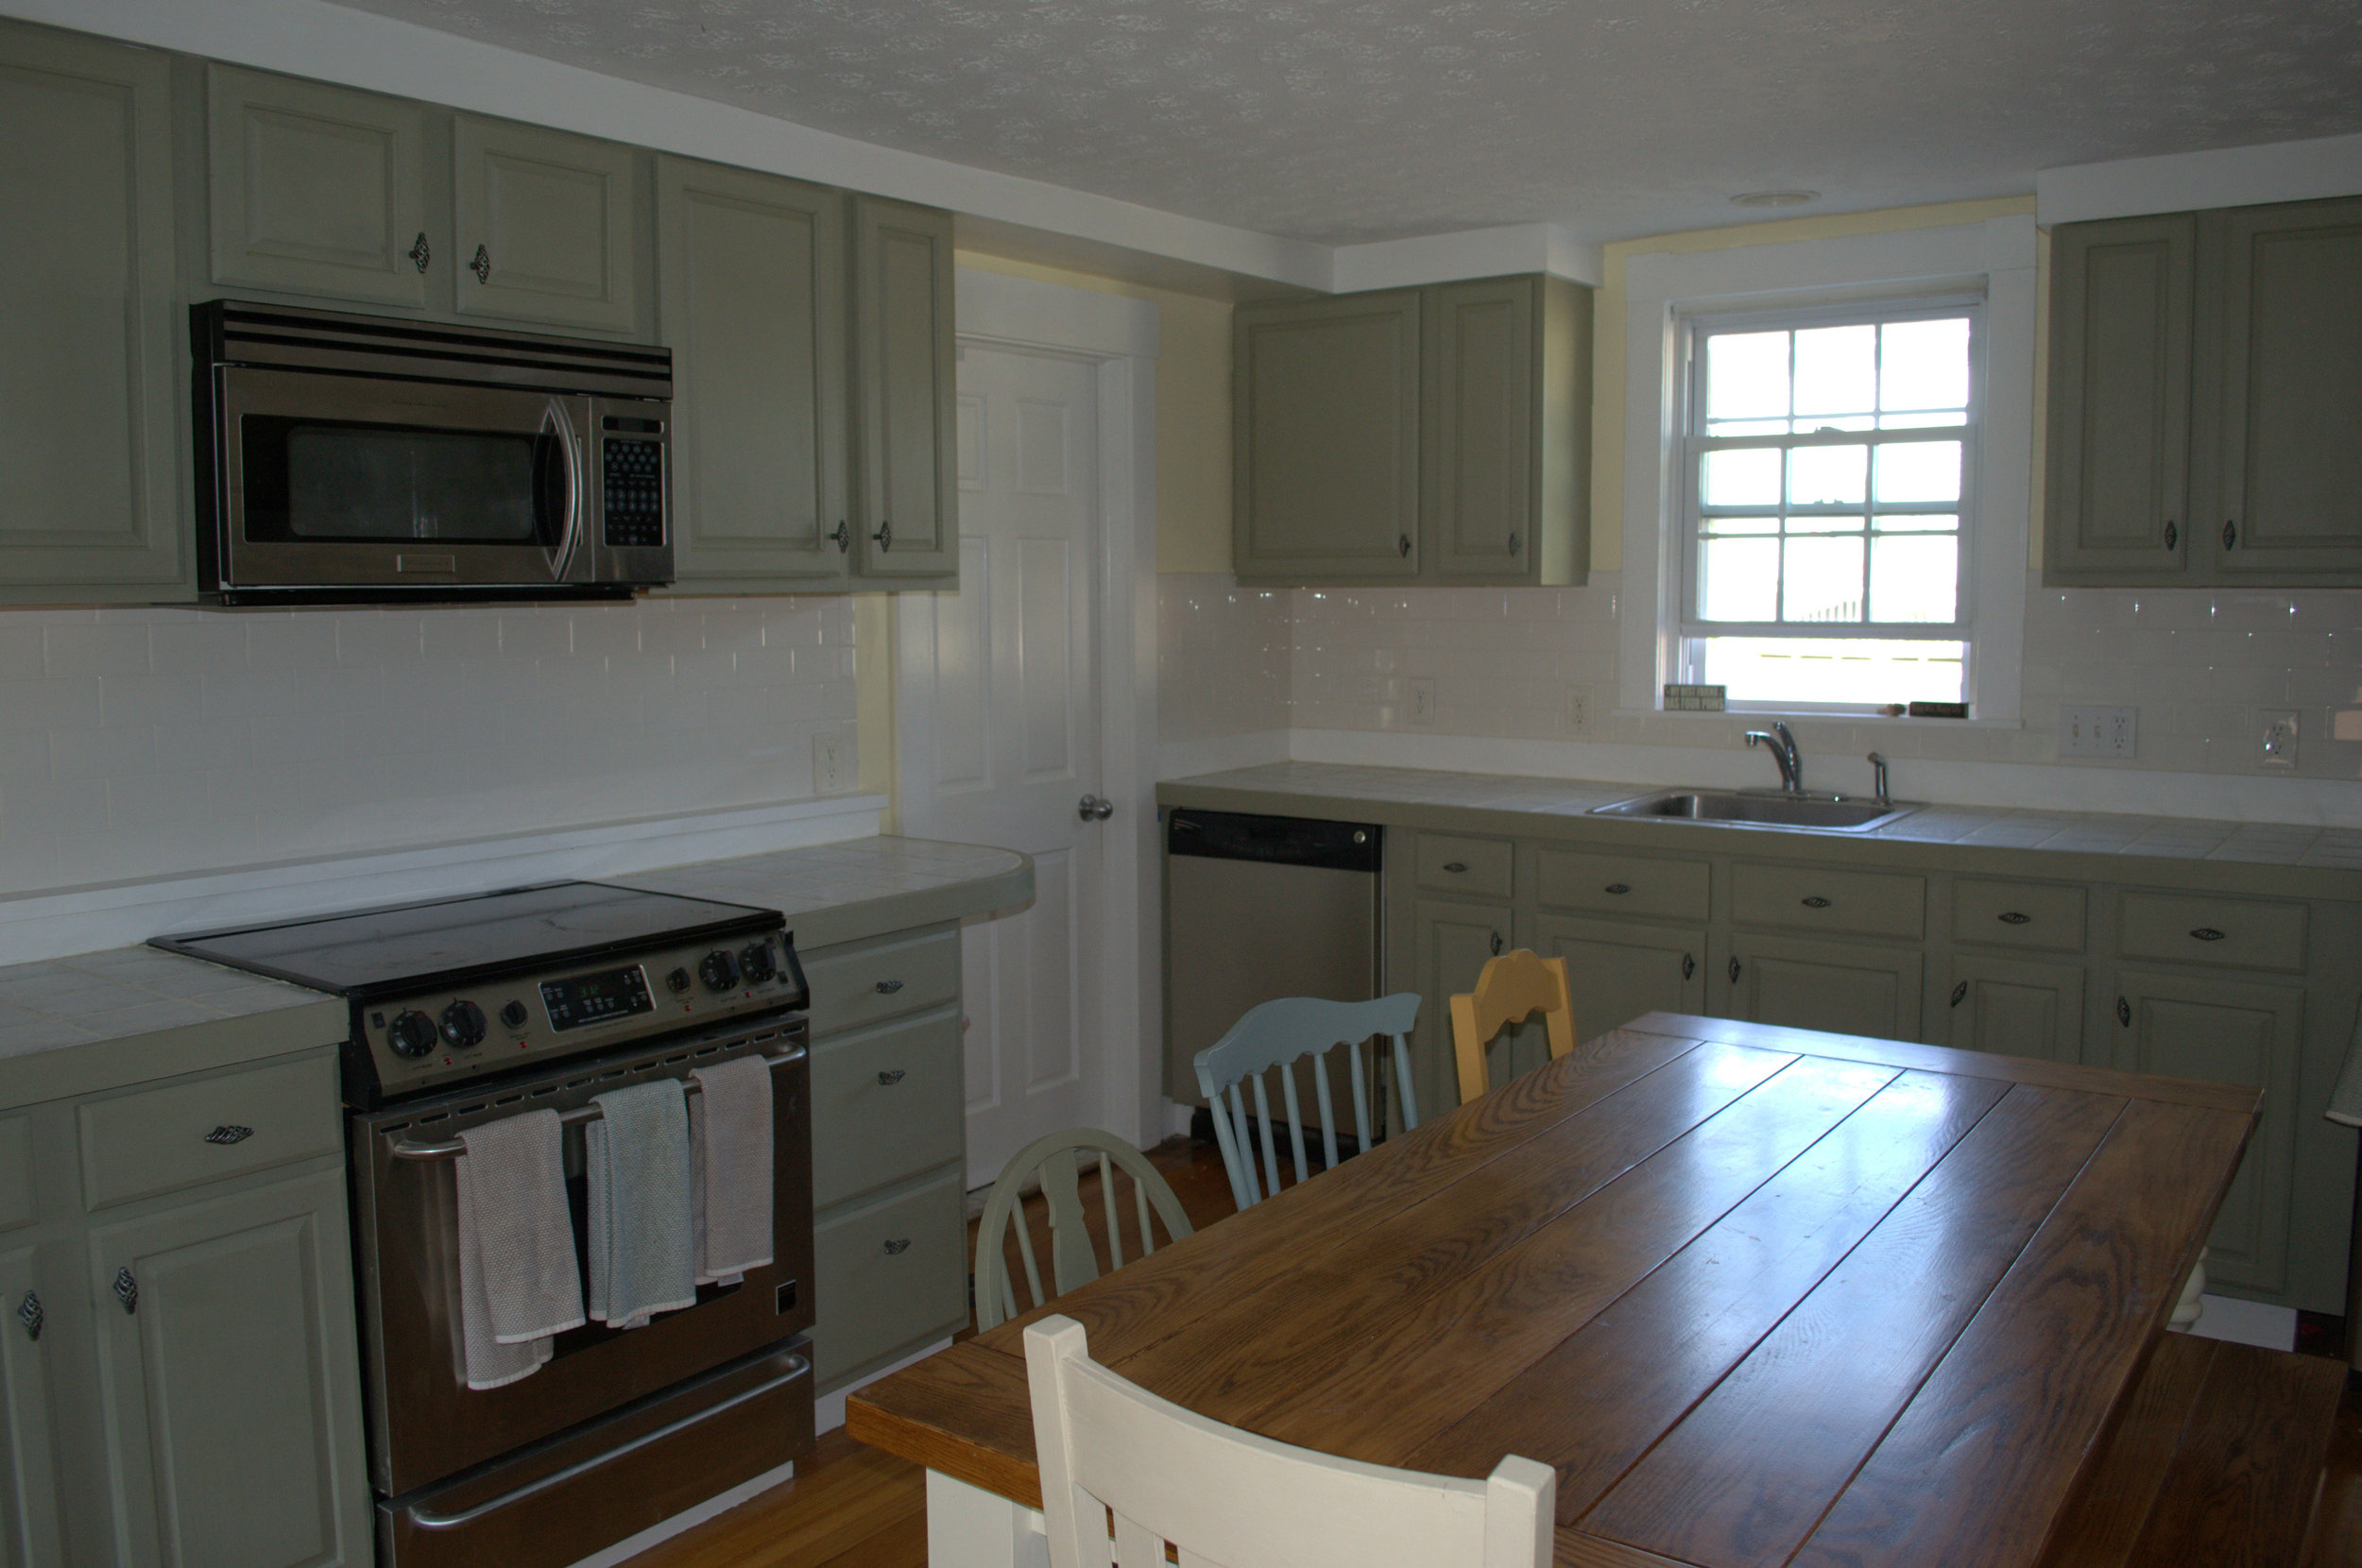 Our beautiful completed kitchen.